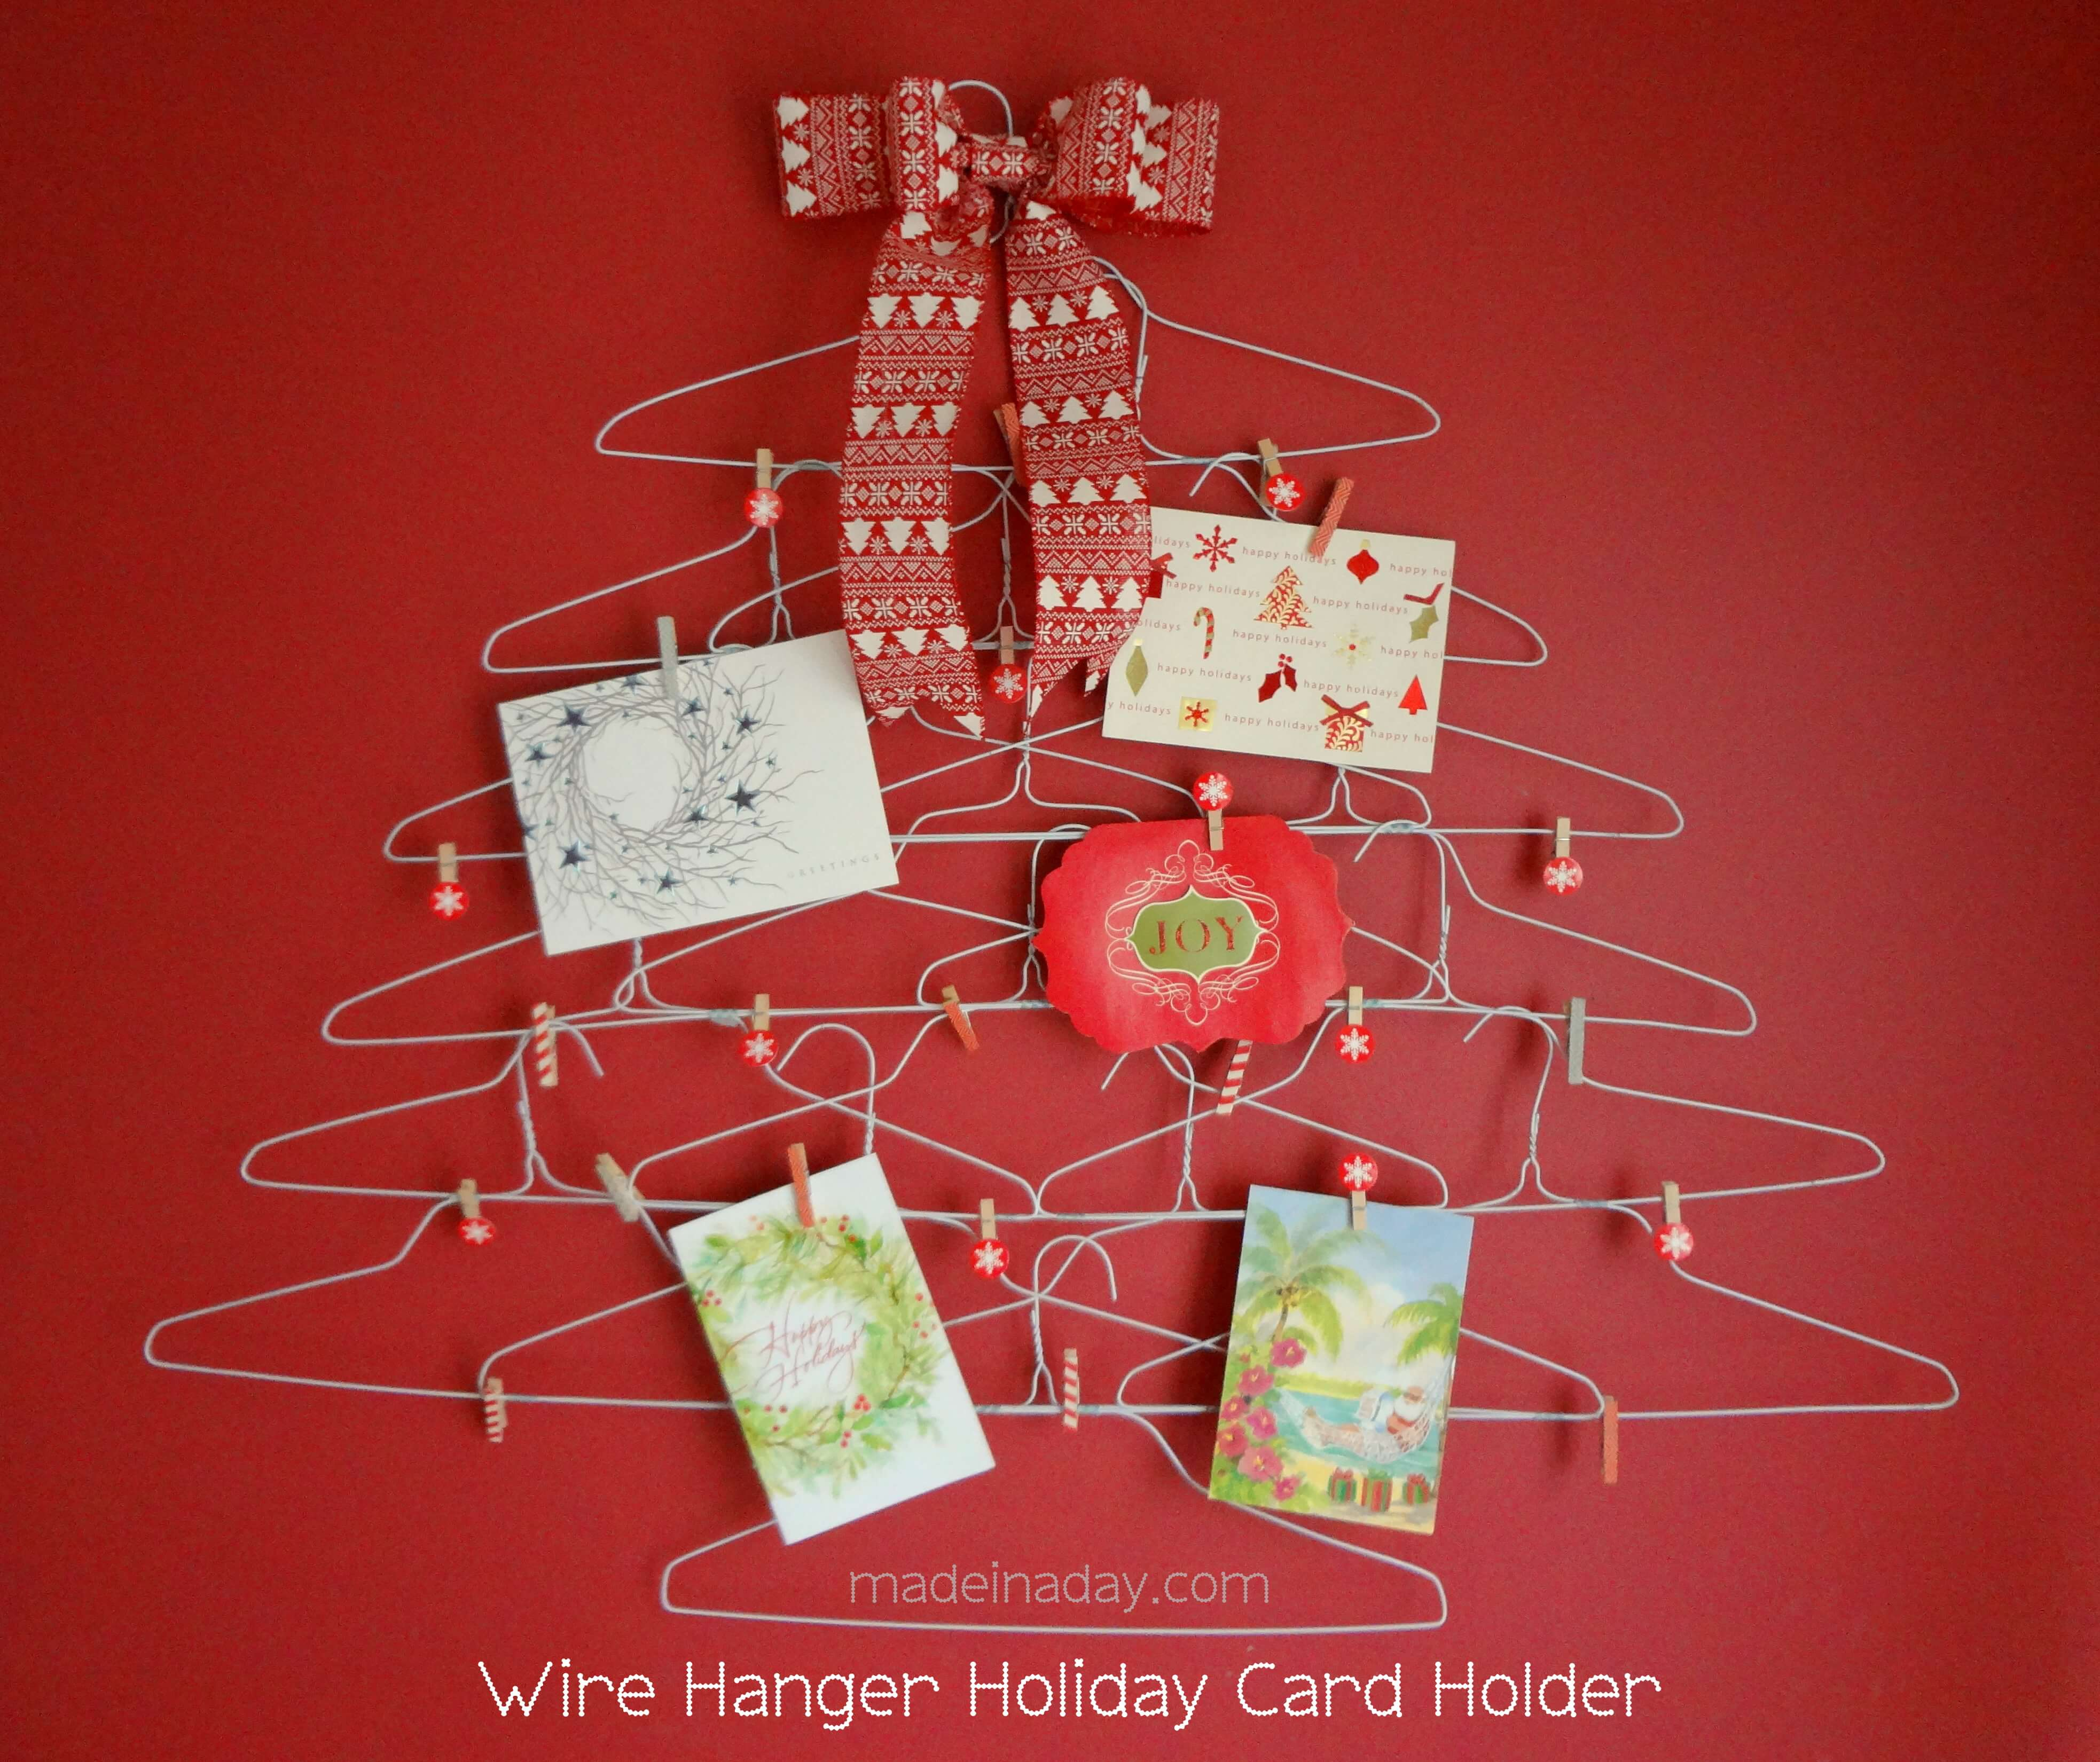 Wire Christmas tree holder for your cards